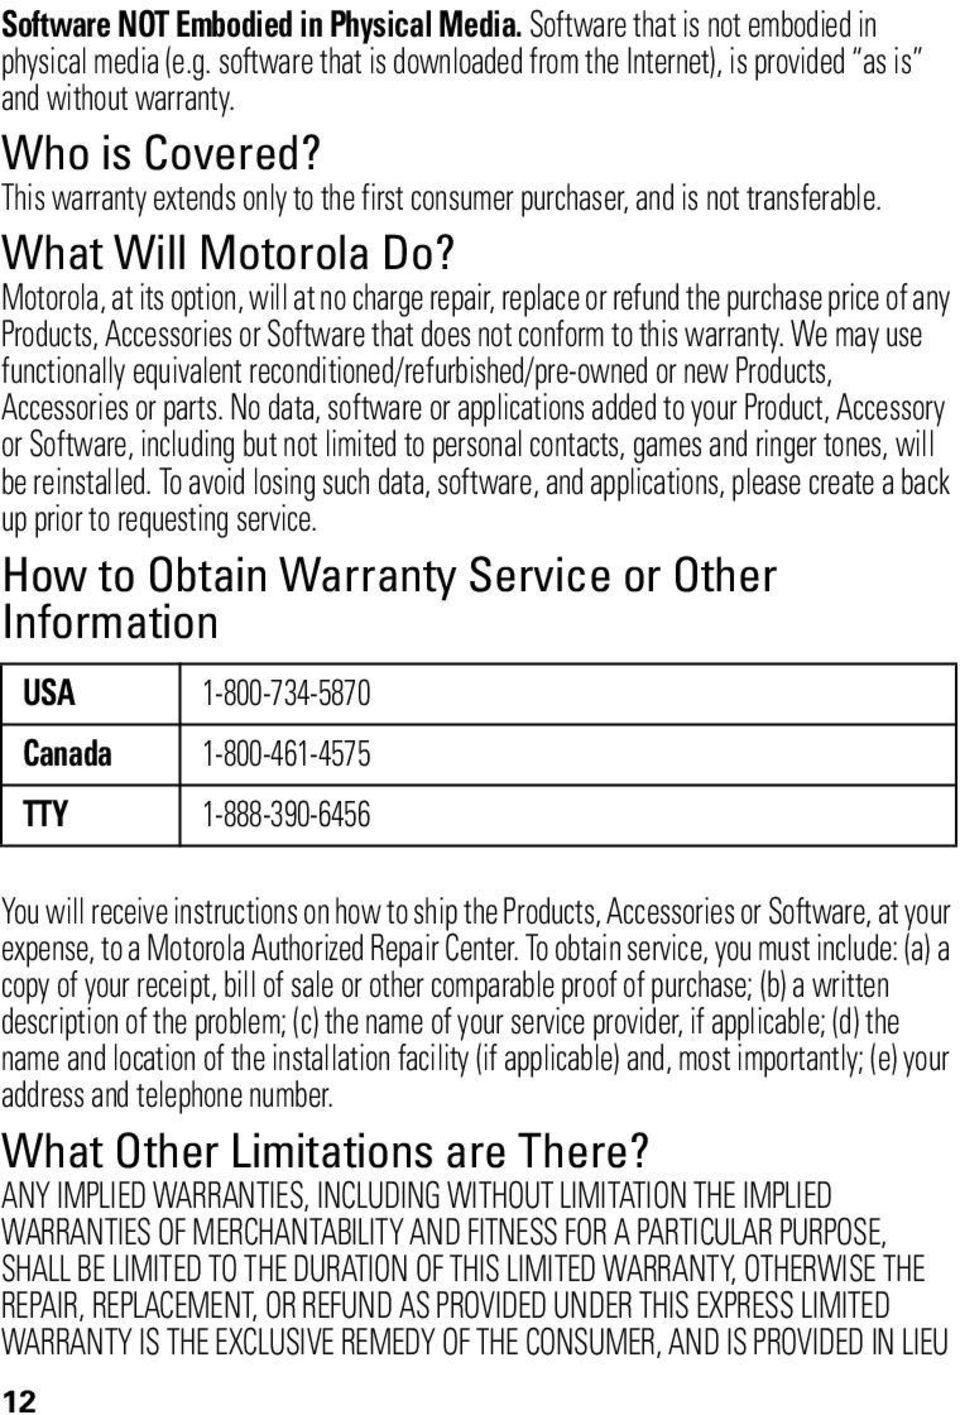 Motorola, at its option, will at no charge repair, replace or refund the purchase price of any Products, Accessories or Software that does not conform to this warranty.